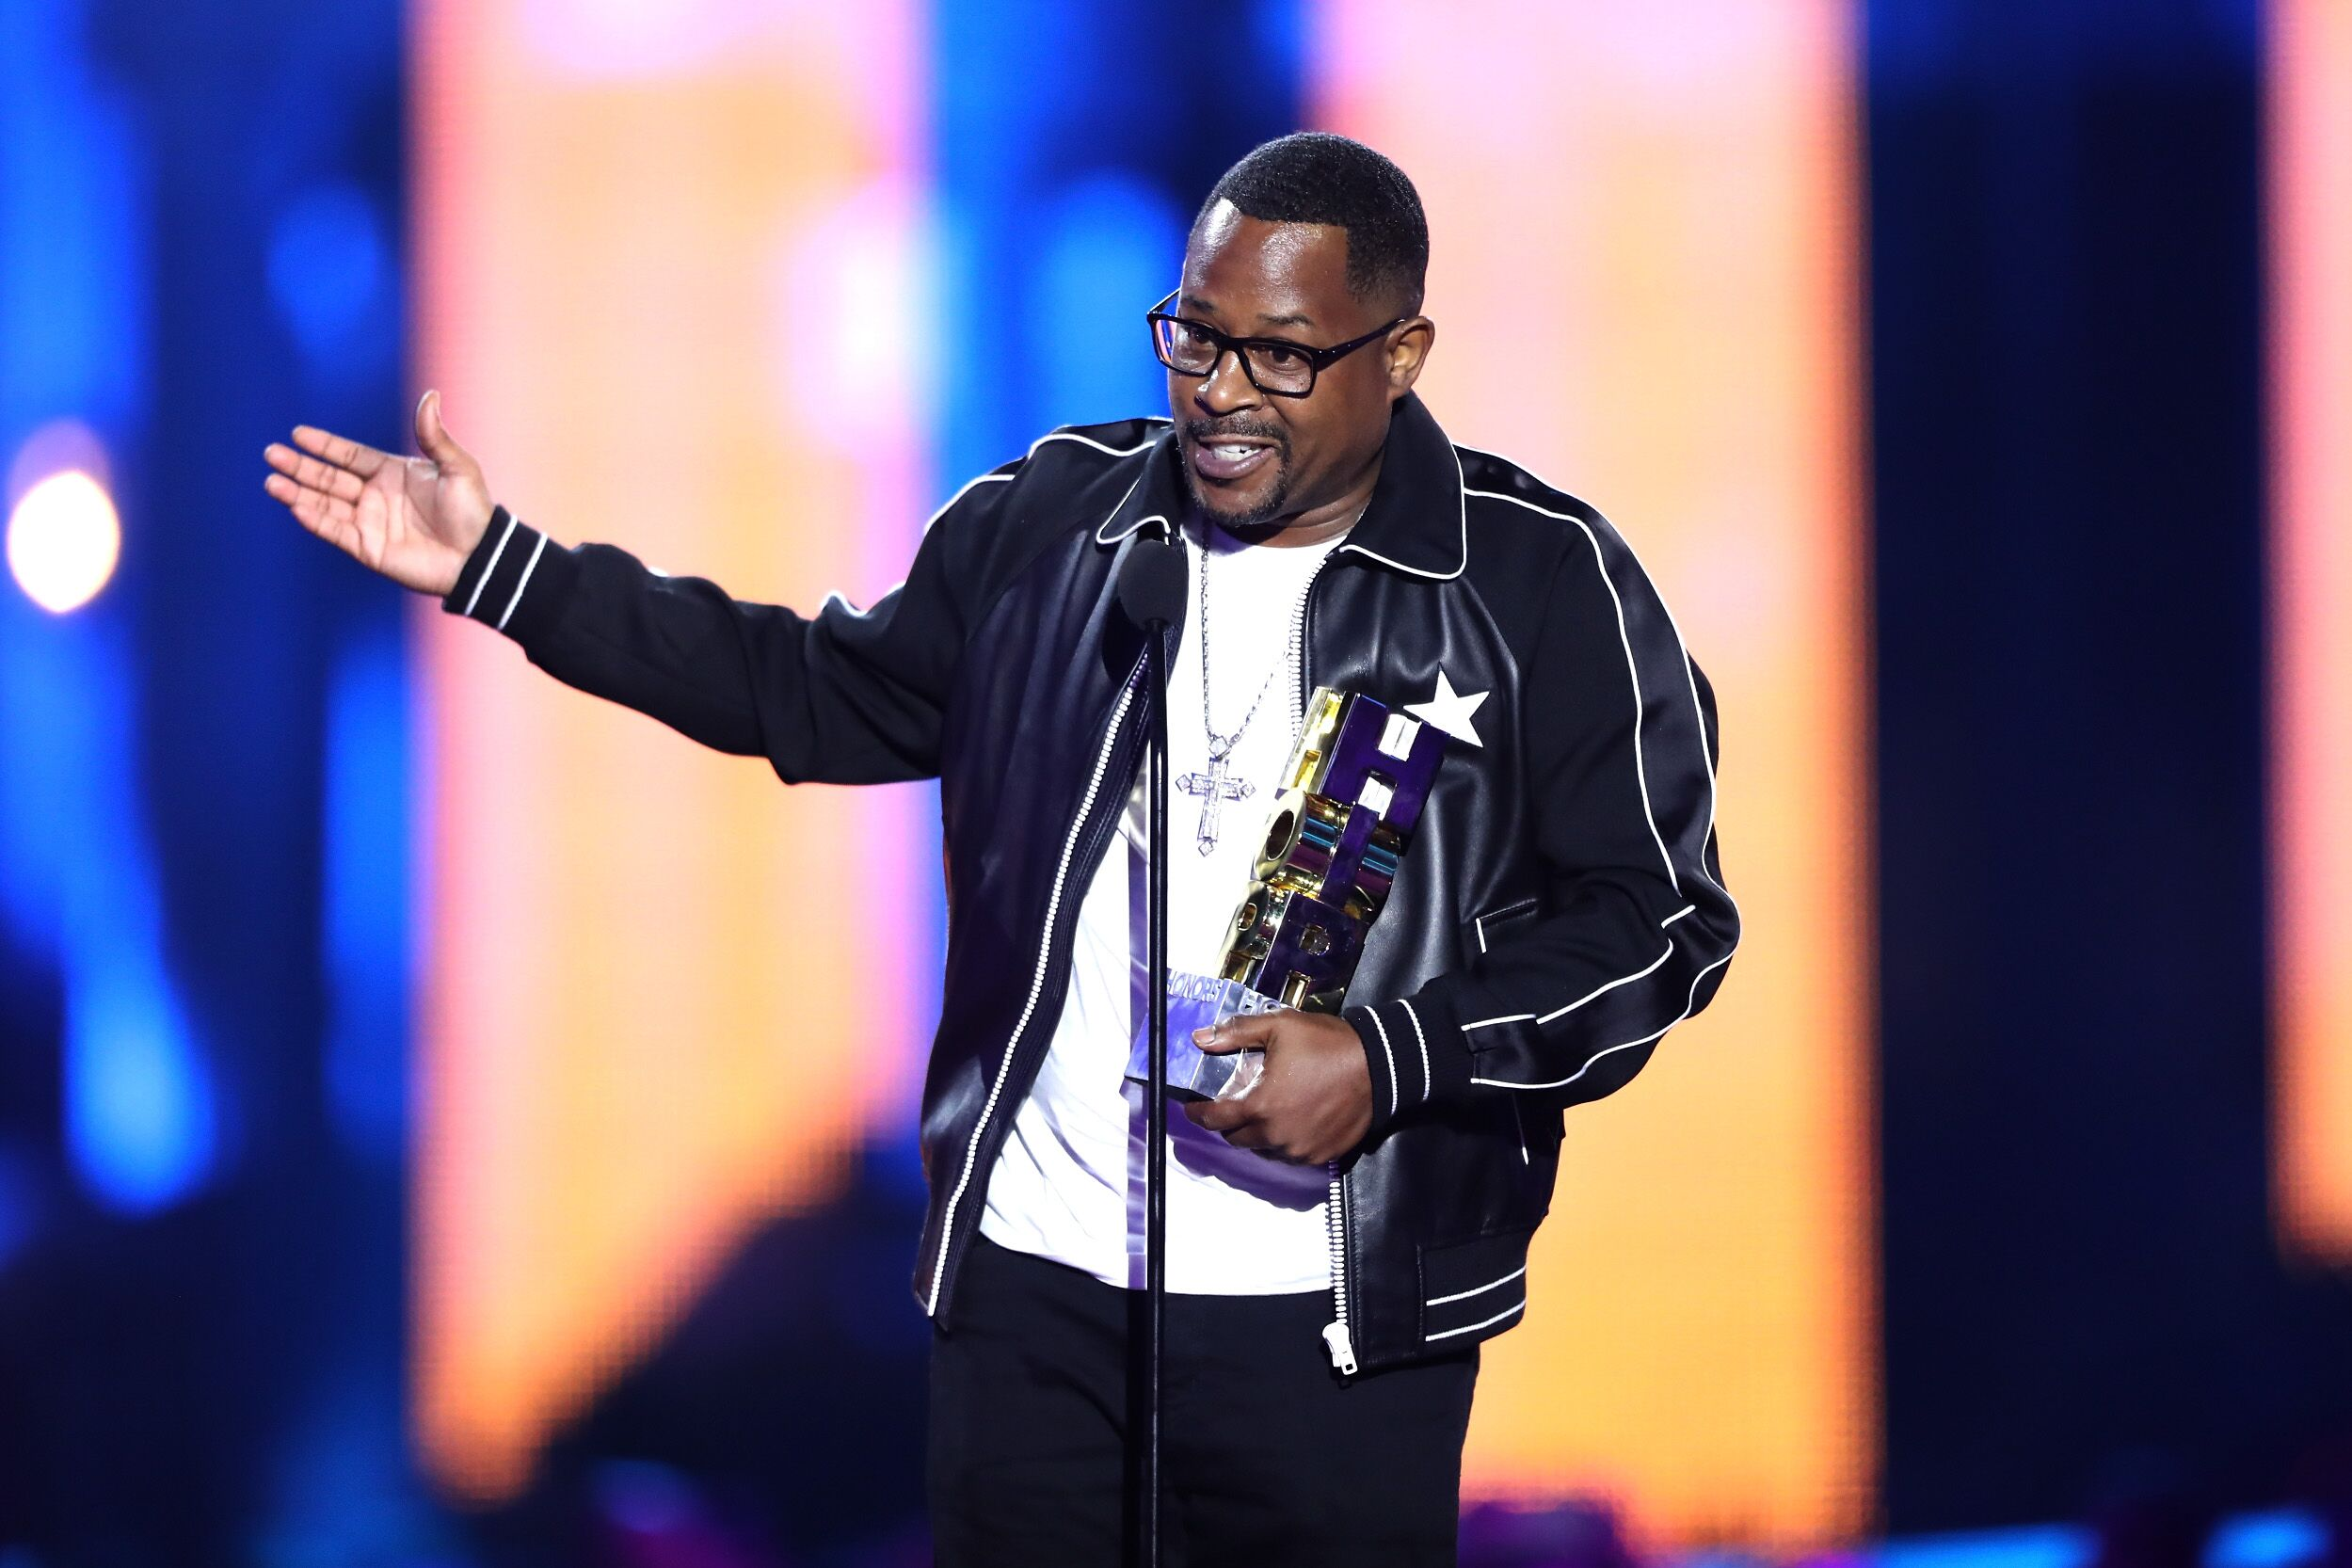 Martin Lawrence receiving an award onstage | Source: Getty Images/GlobalImagesUkraine